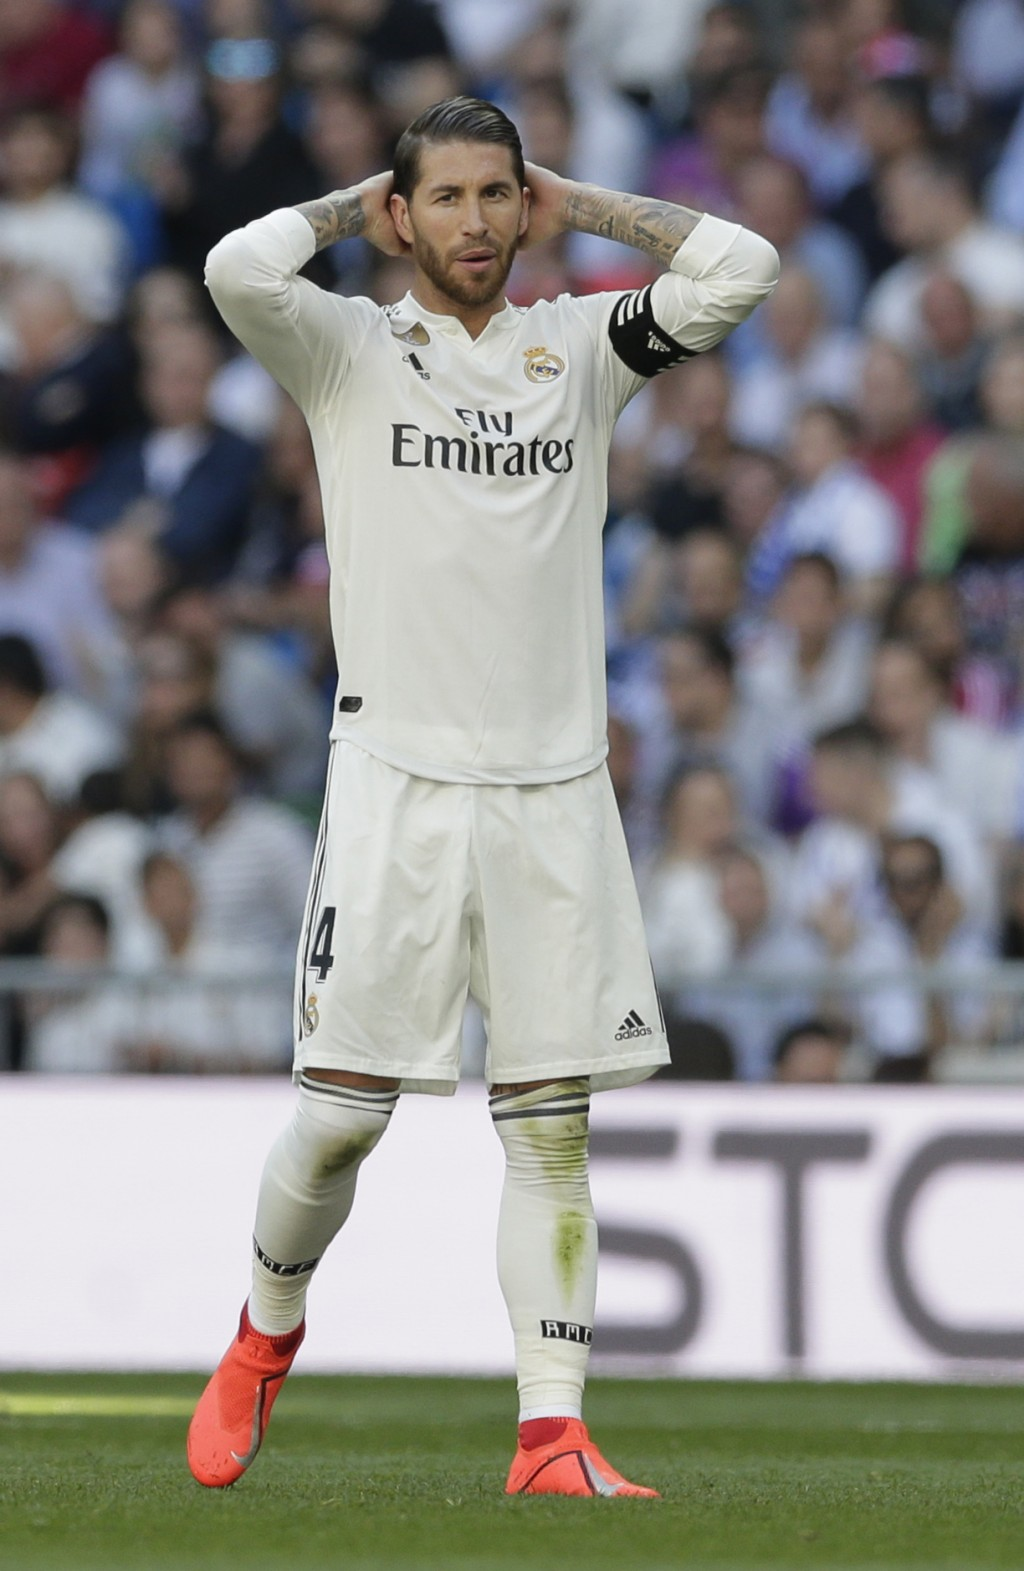 Real Madrid's Sergio Ramos gestures during a Spanish La Liga soccer match between Real Madrid and Celta at the Santiago Bernabeu stadium in Madrid, Sp